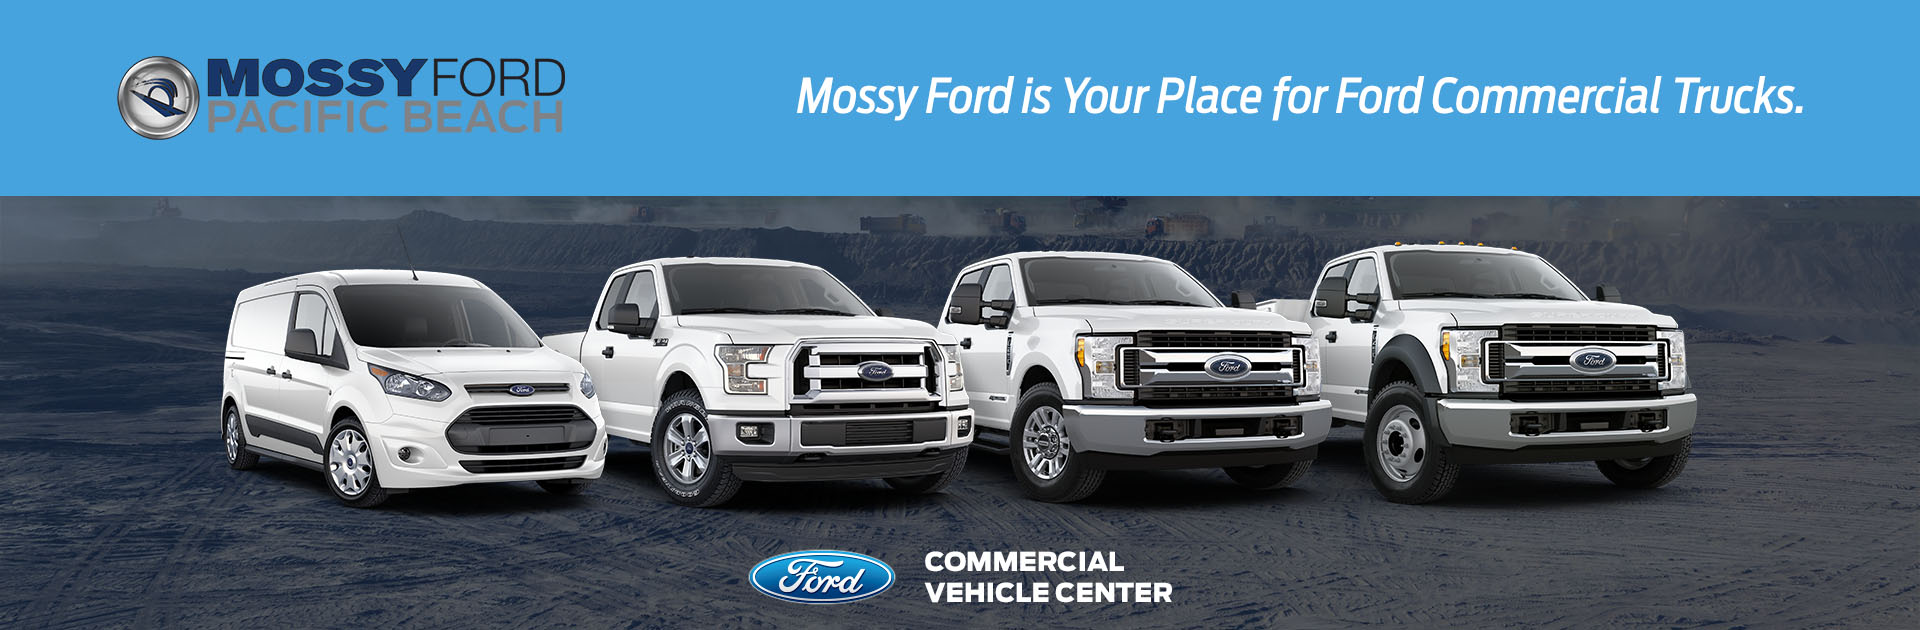 Mossy Ford Commercial Truck Hero No Cta